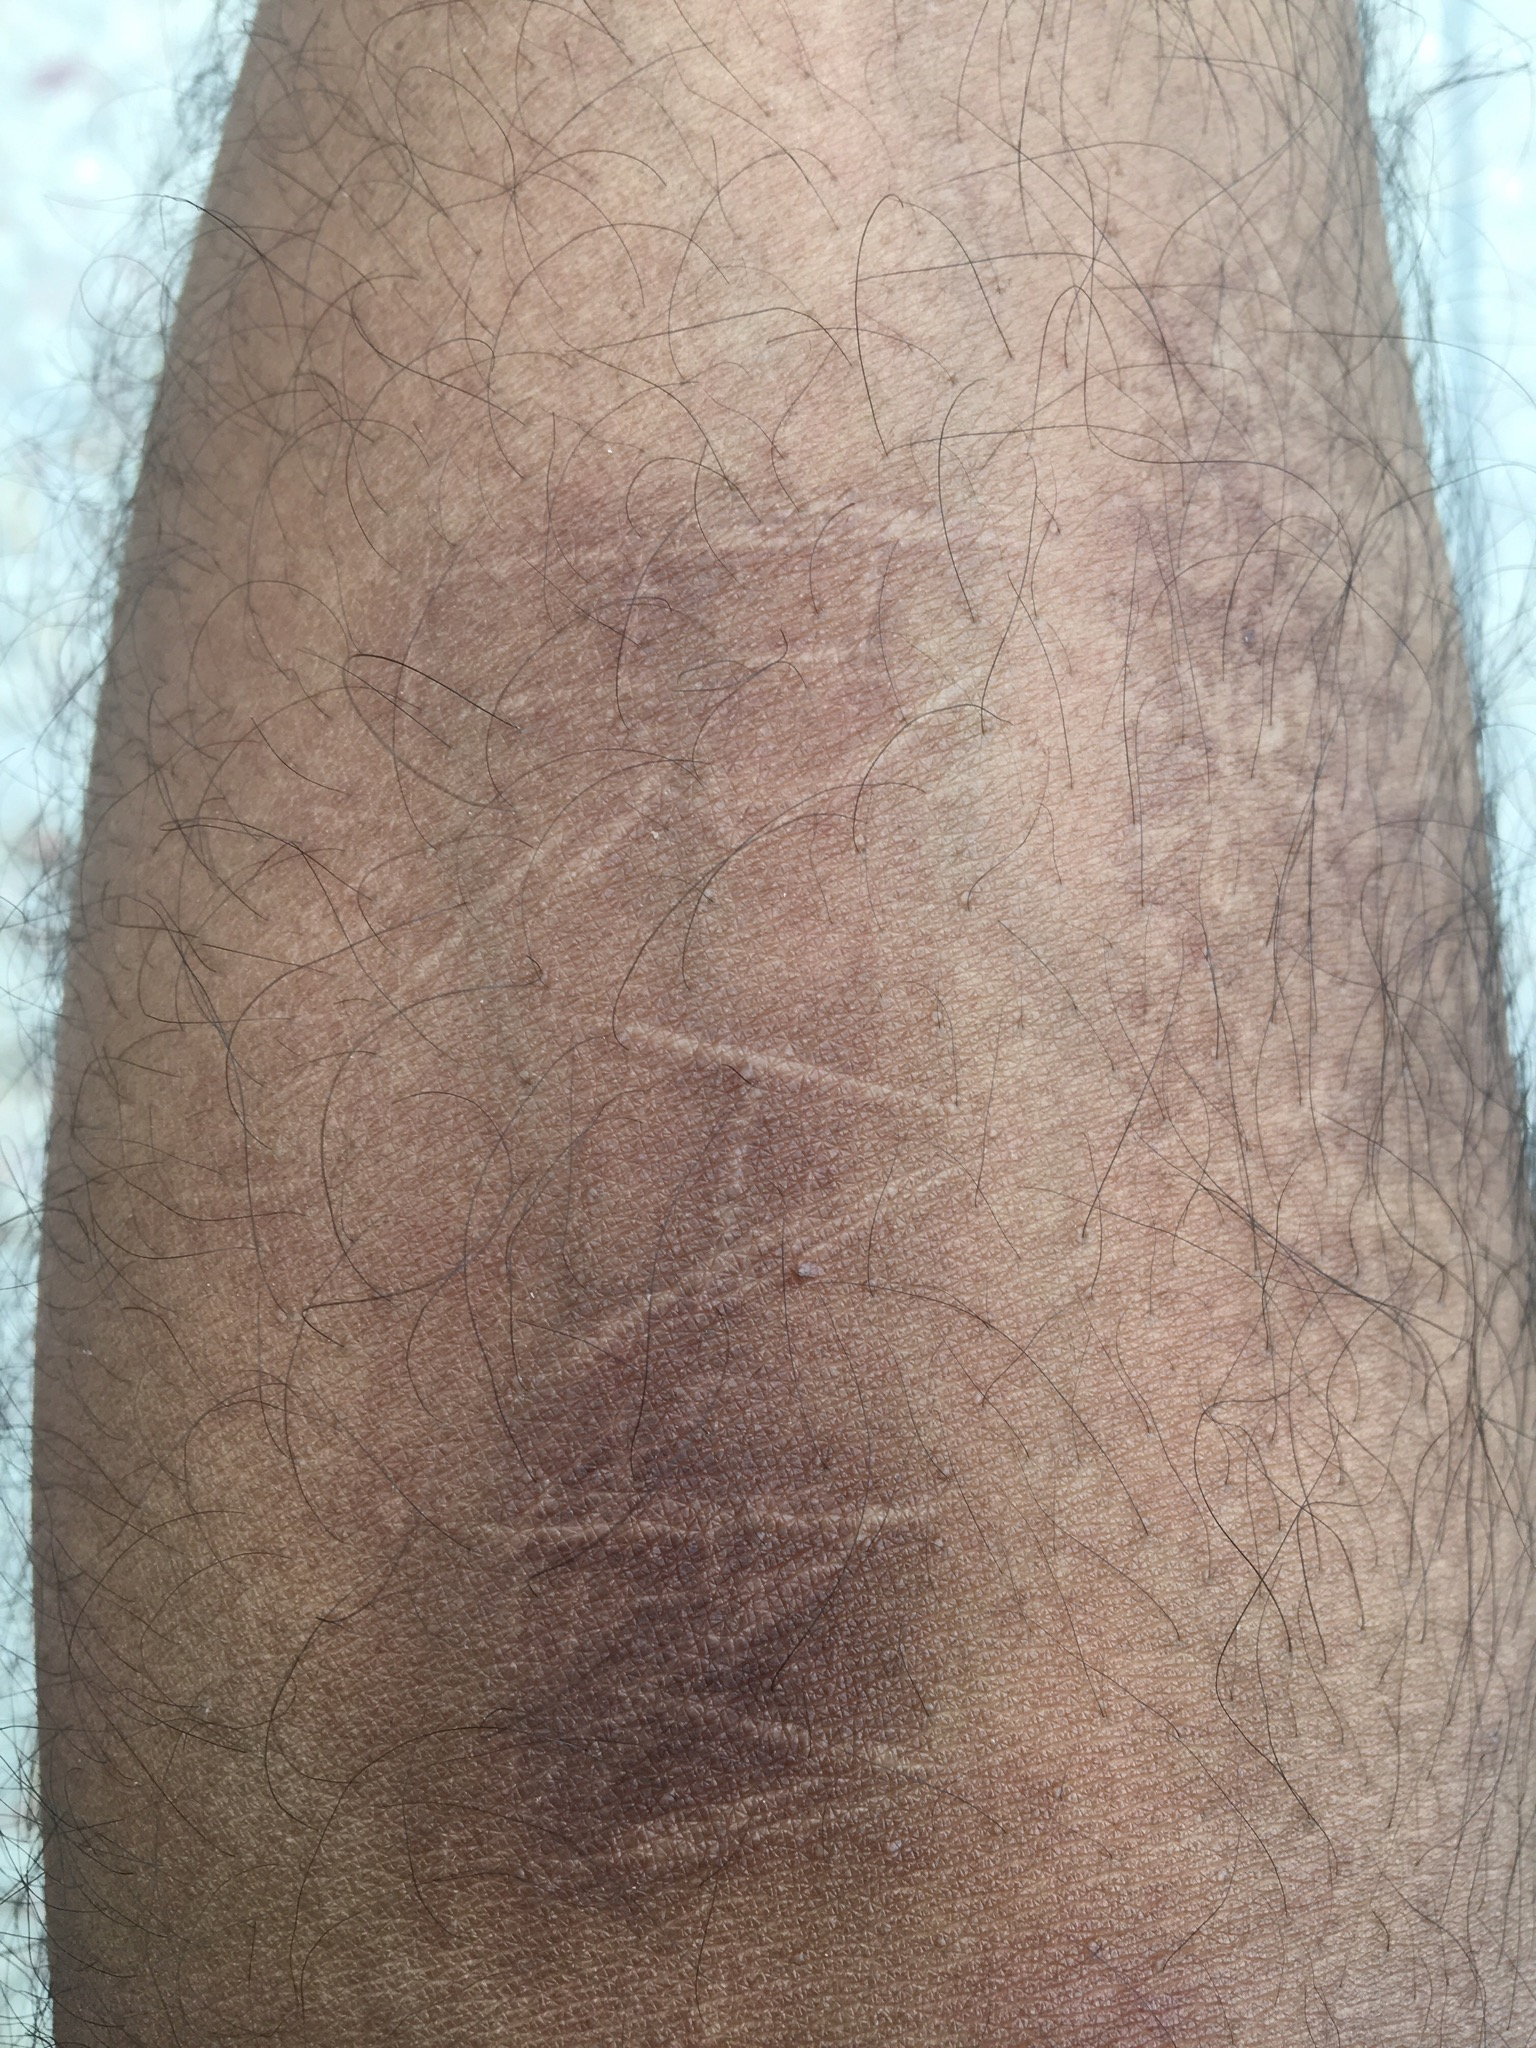 Self Harm Scar I Have Cut Marks Of Blade Ask A Doctor Online